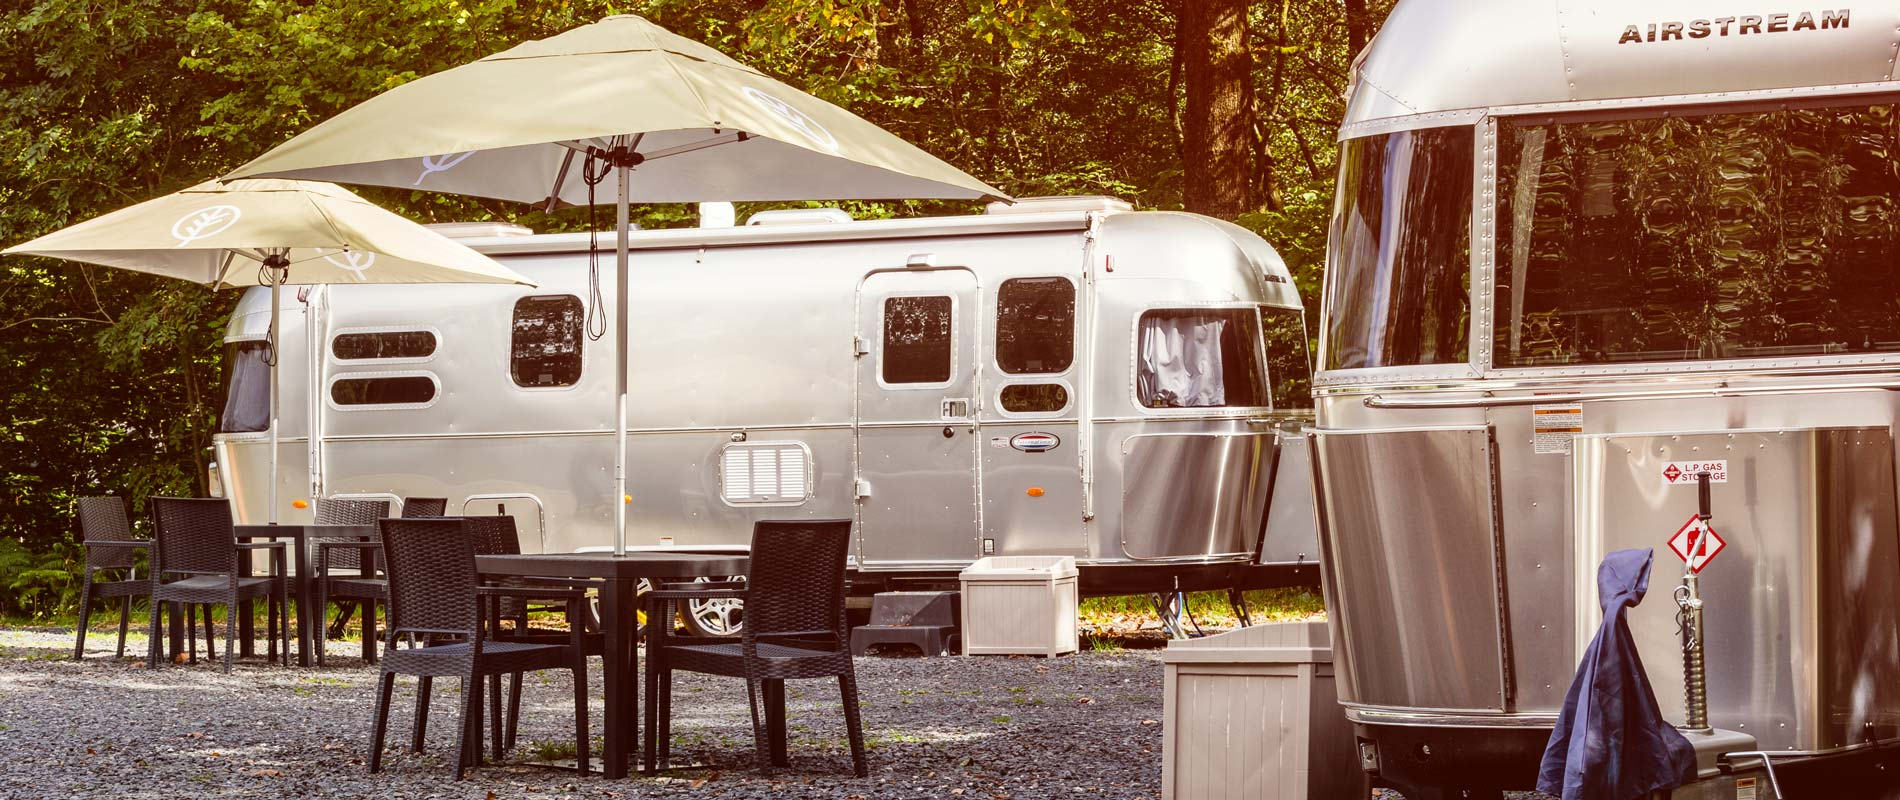 Two airstreams with outdoor seating, parasols and trees in background